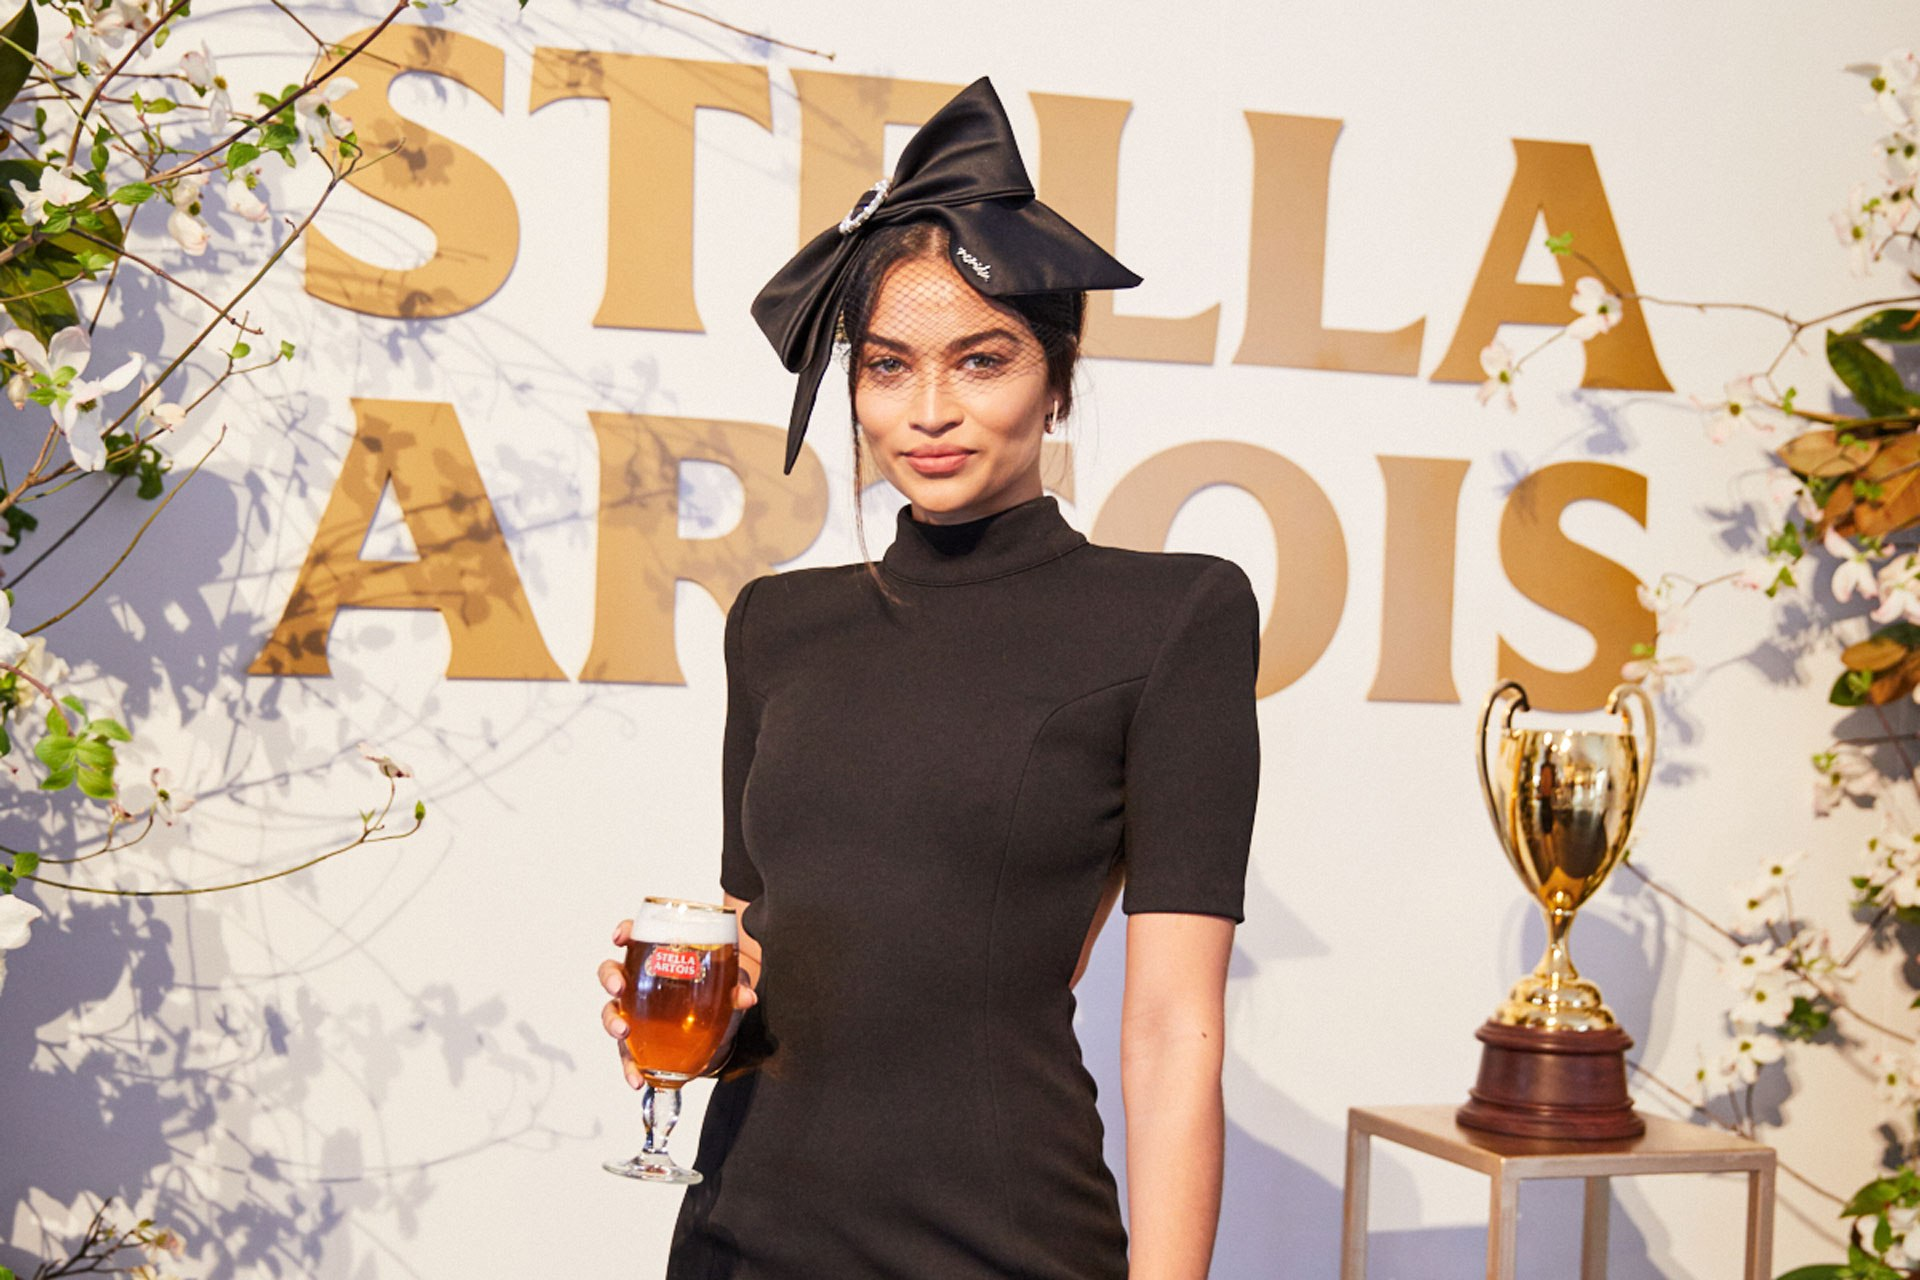 Shanina Shaik on breaking into acting and proving she's not just 'commercial'